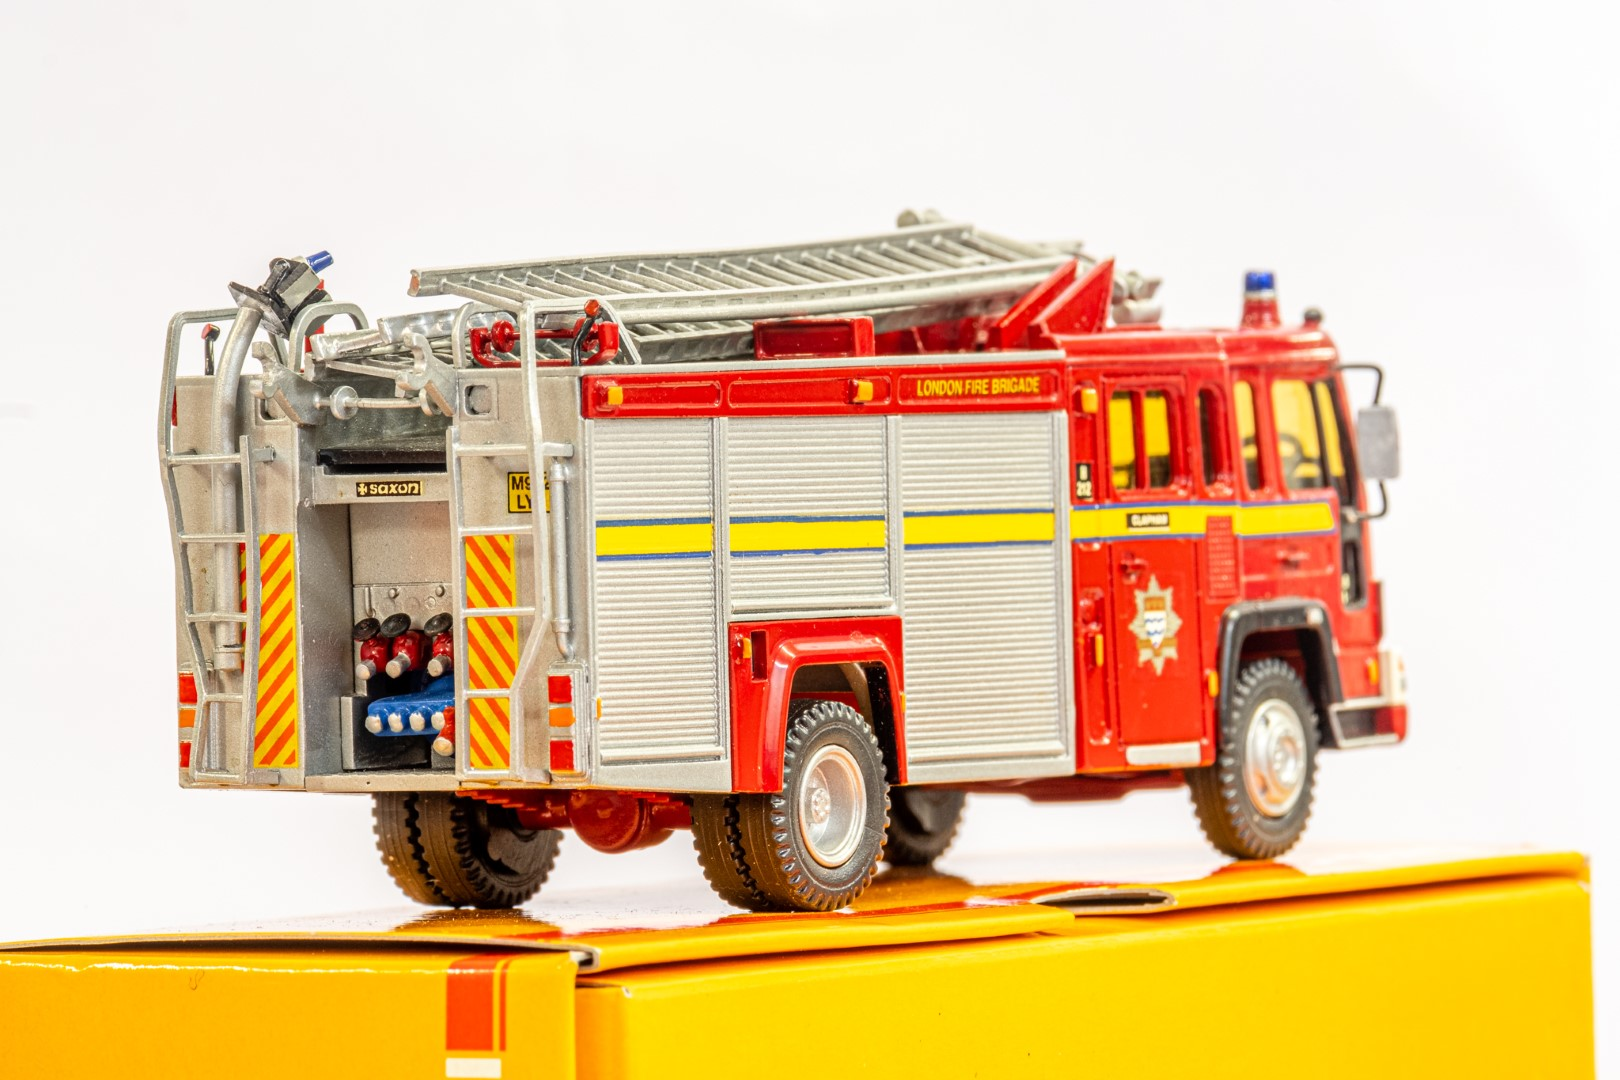 Fire Brigade Models Volvo Fire Engine - Clapham Fire Brigade - In Wrong Box - Image 6 of 7